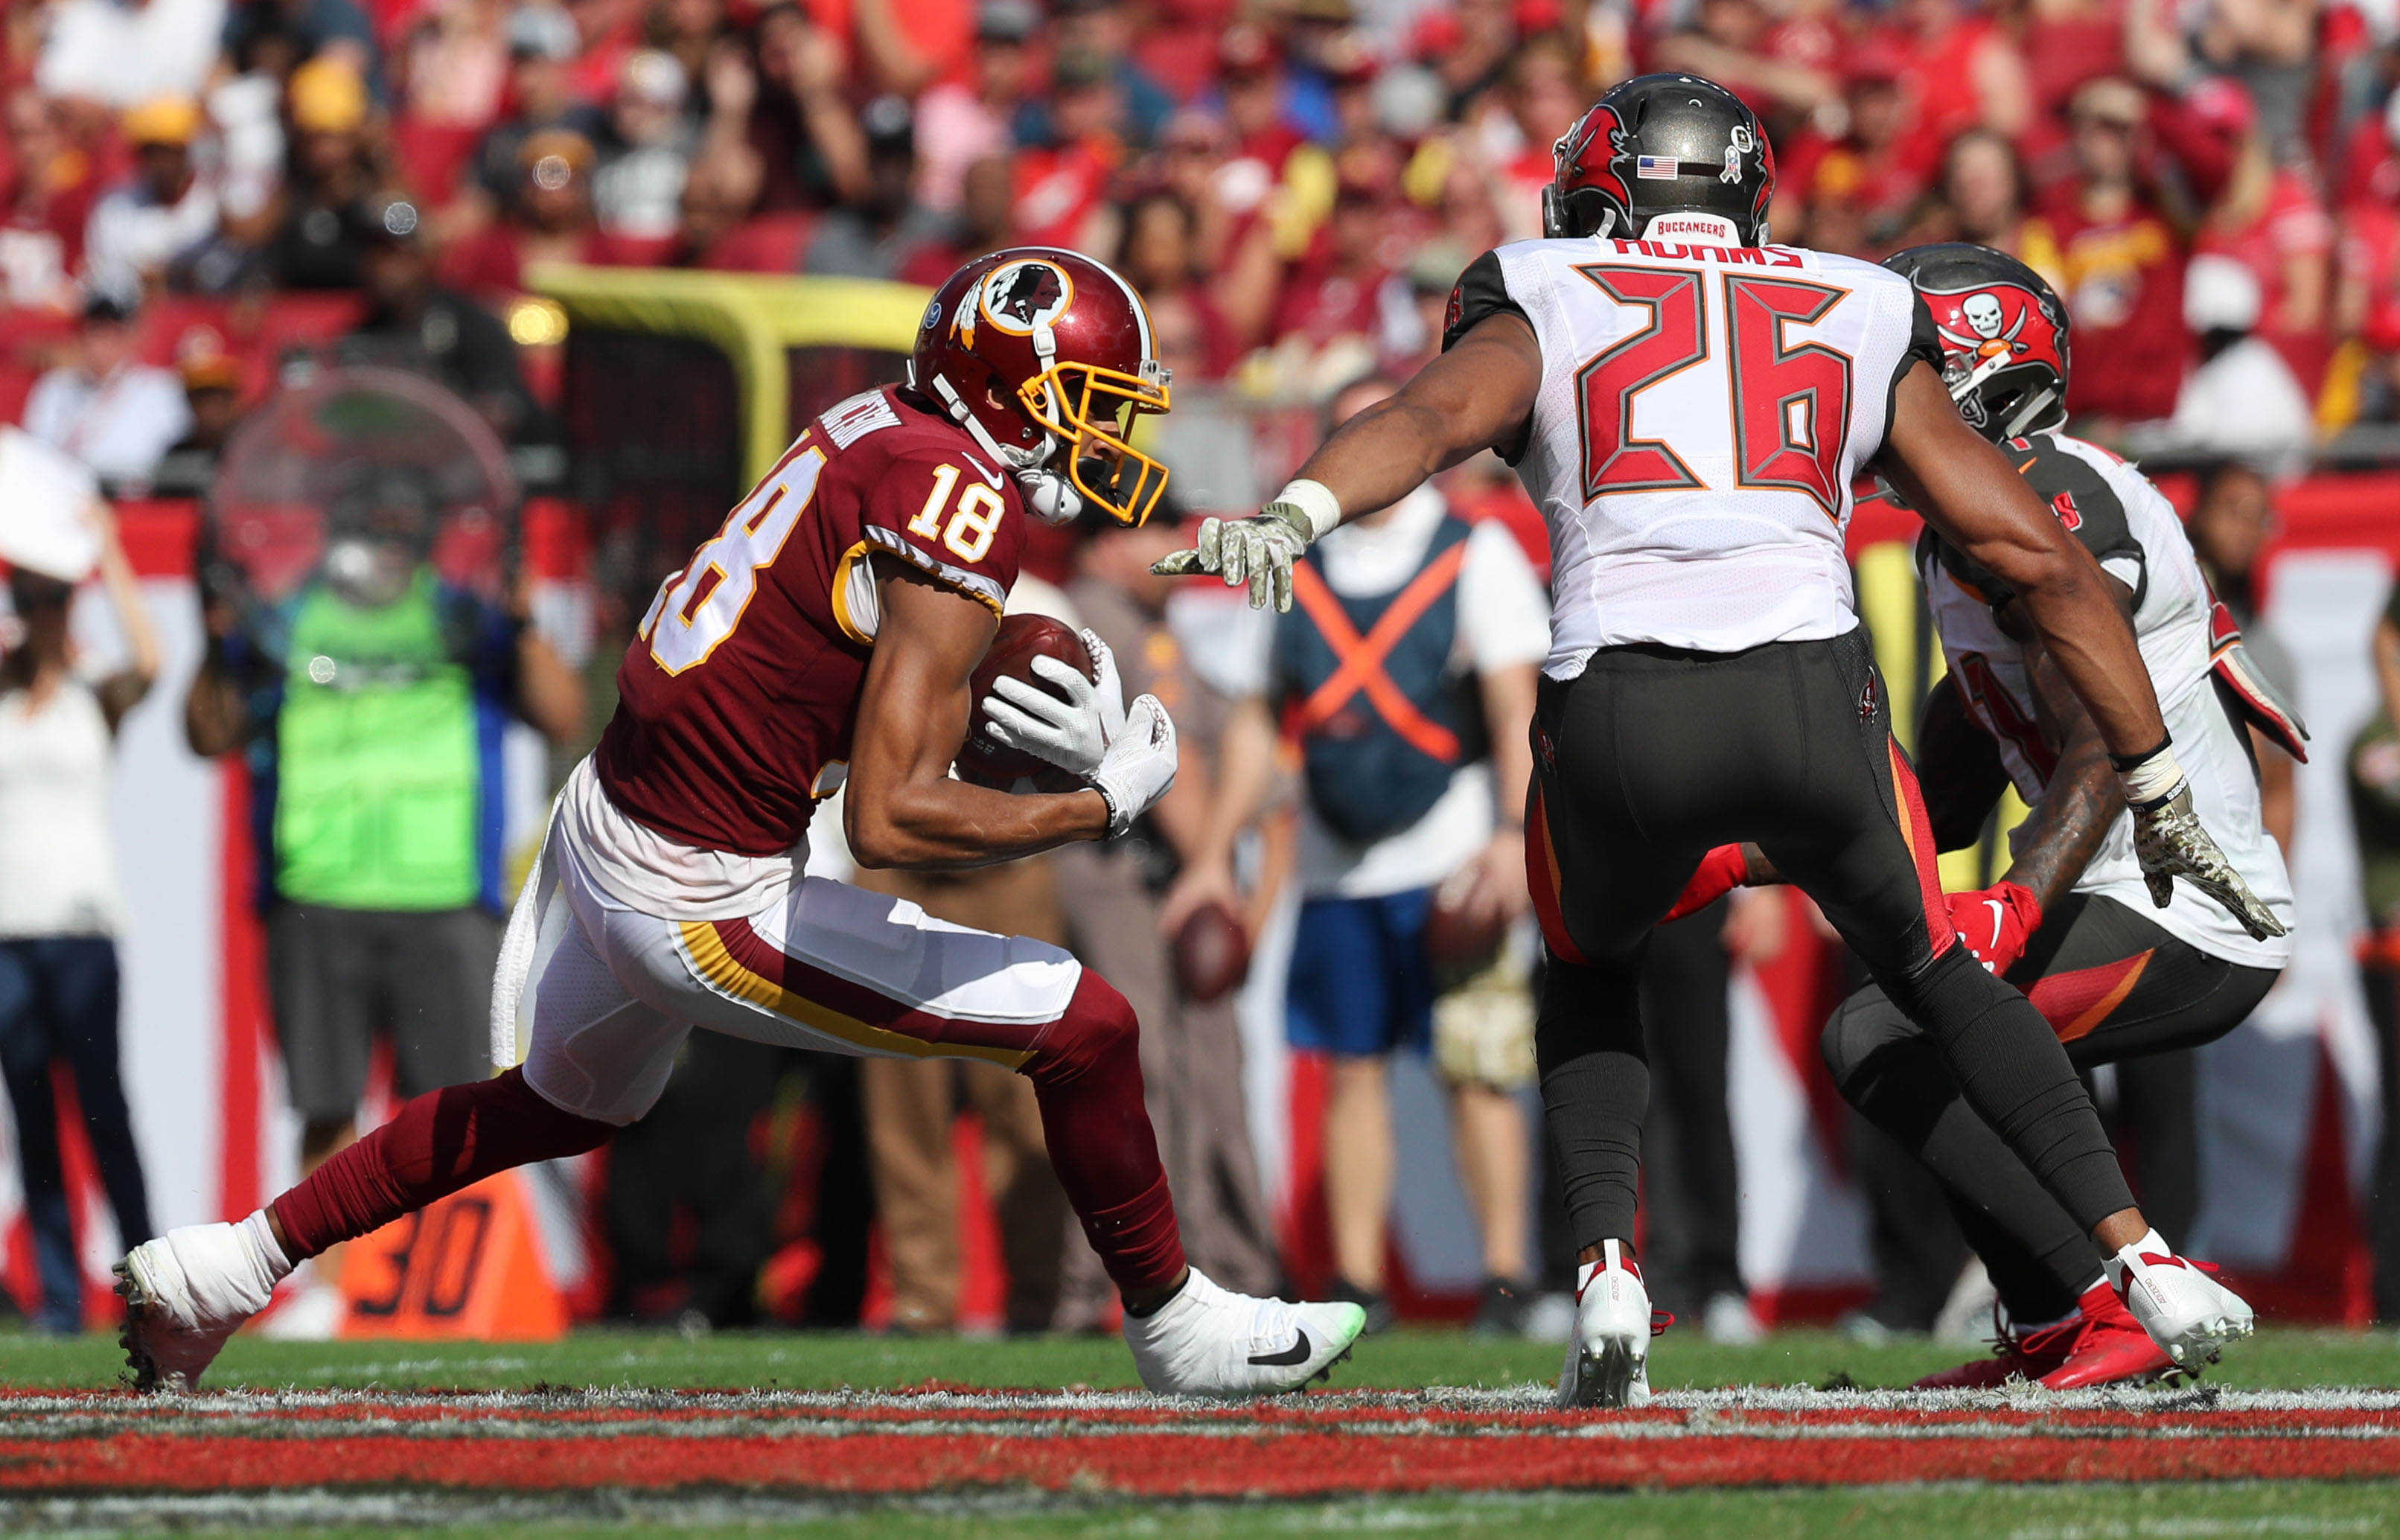 Redskins vs. Buccaneers: Storylines, how to watch, and more